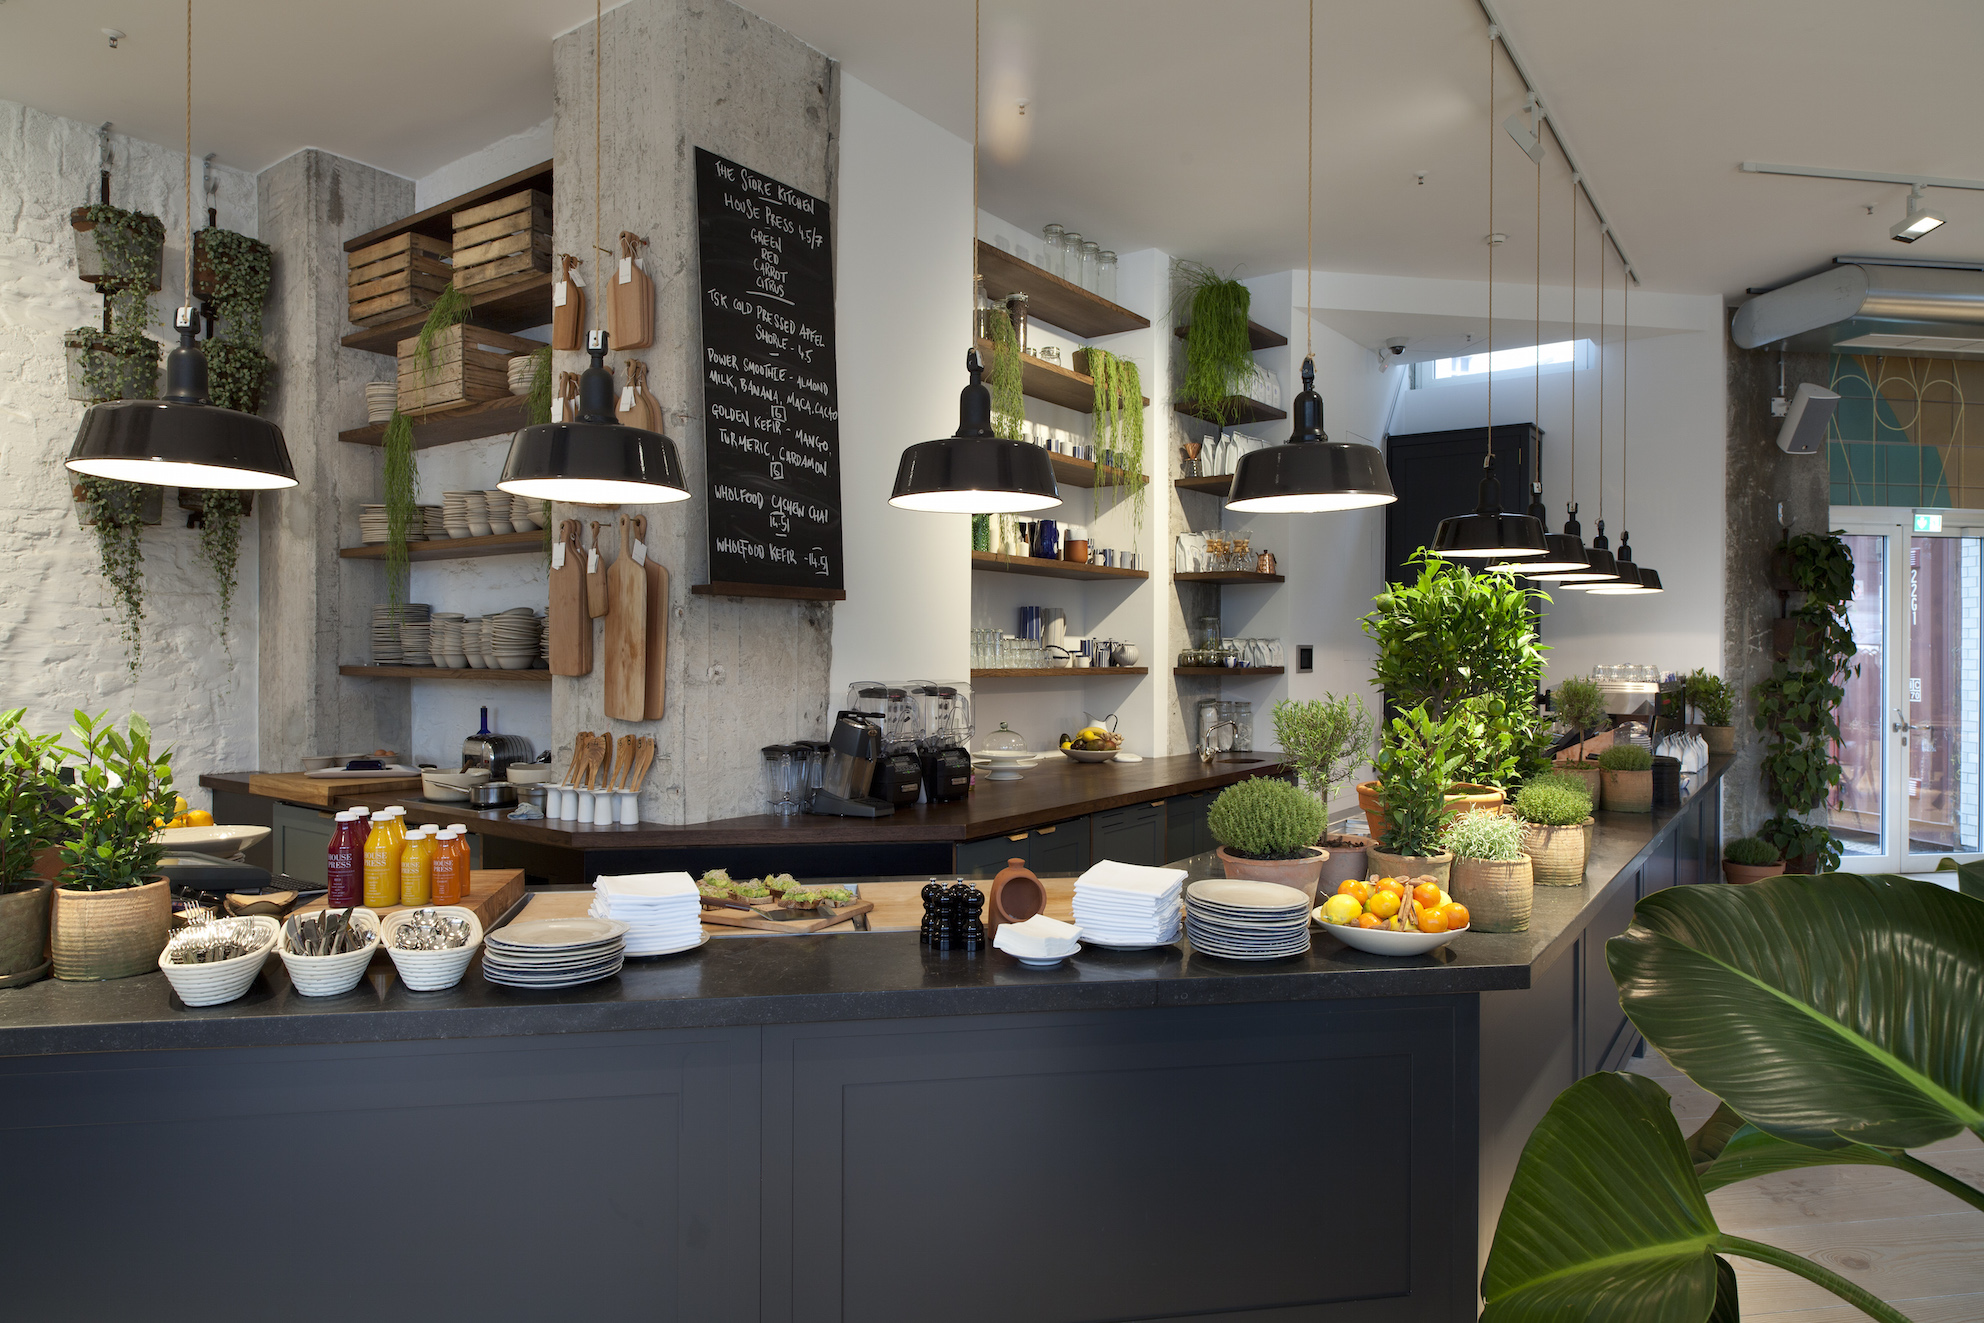 The Store Kitchen at Soho House Berlin